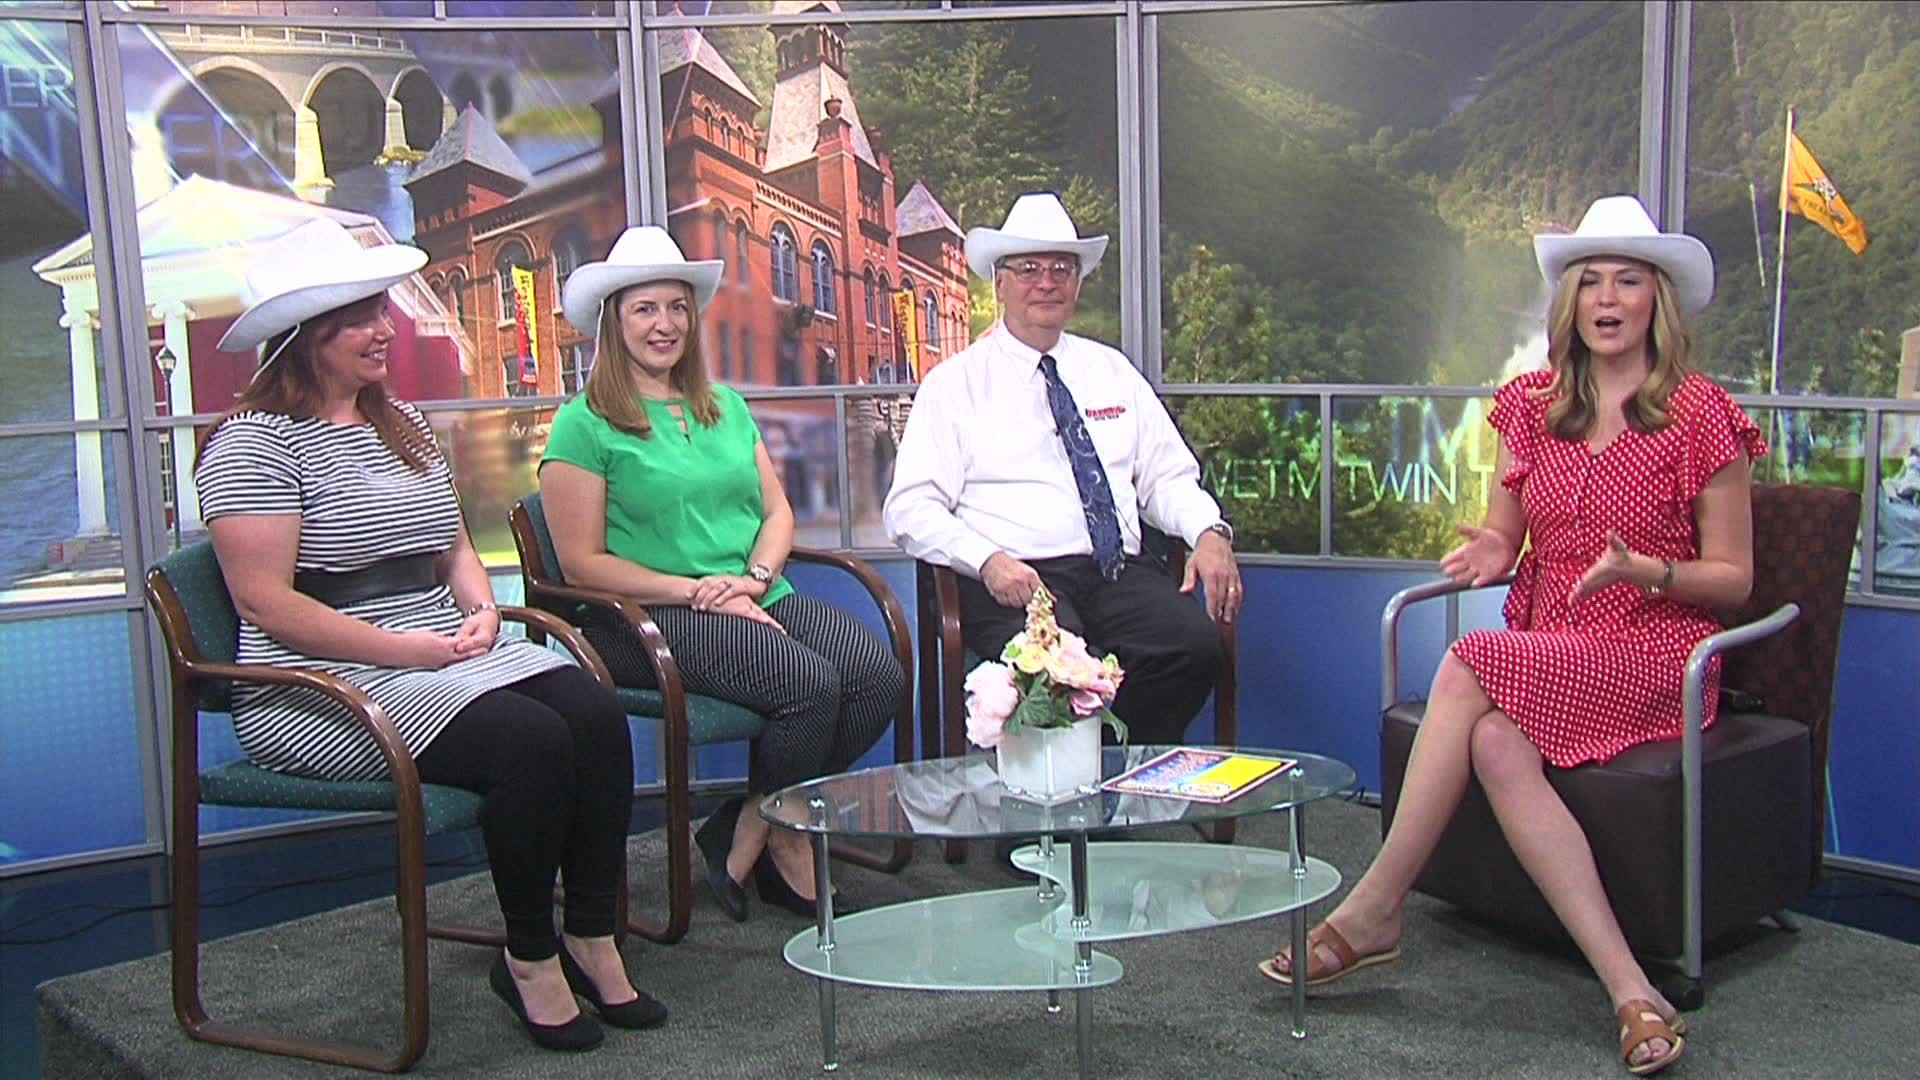 3rd Annual White Hat Community Day set for June 22